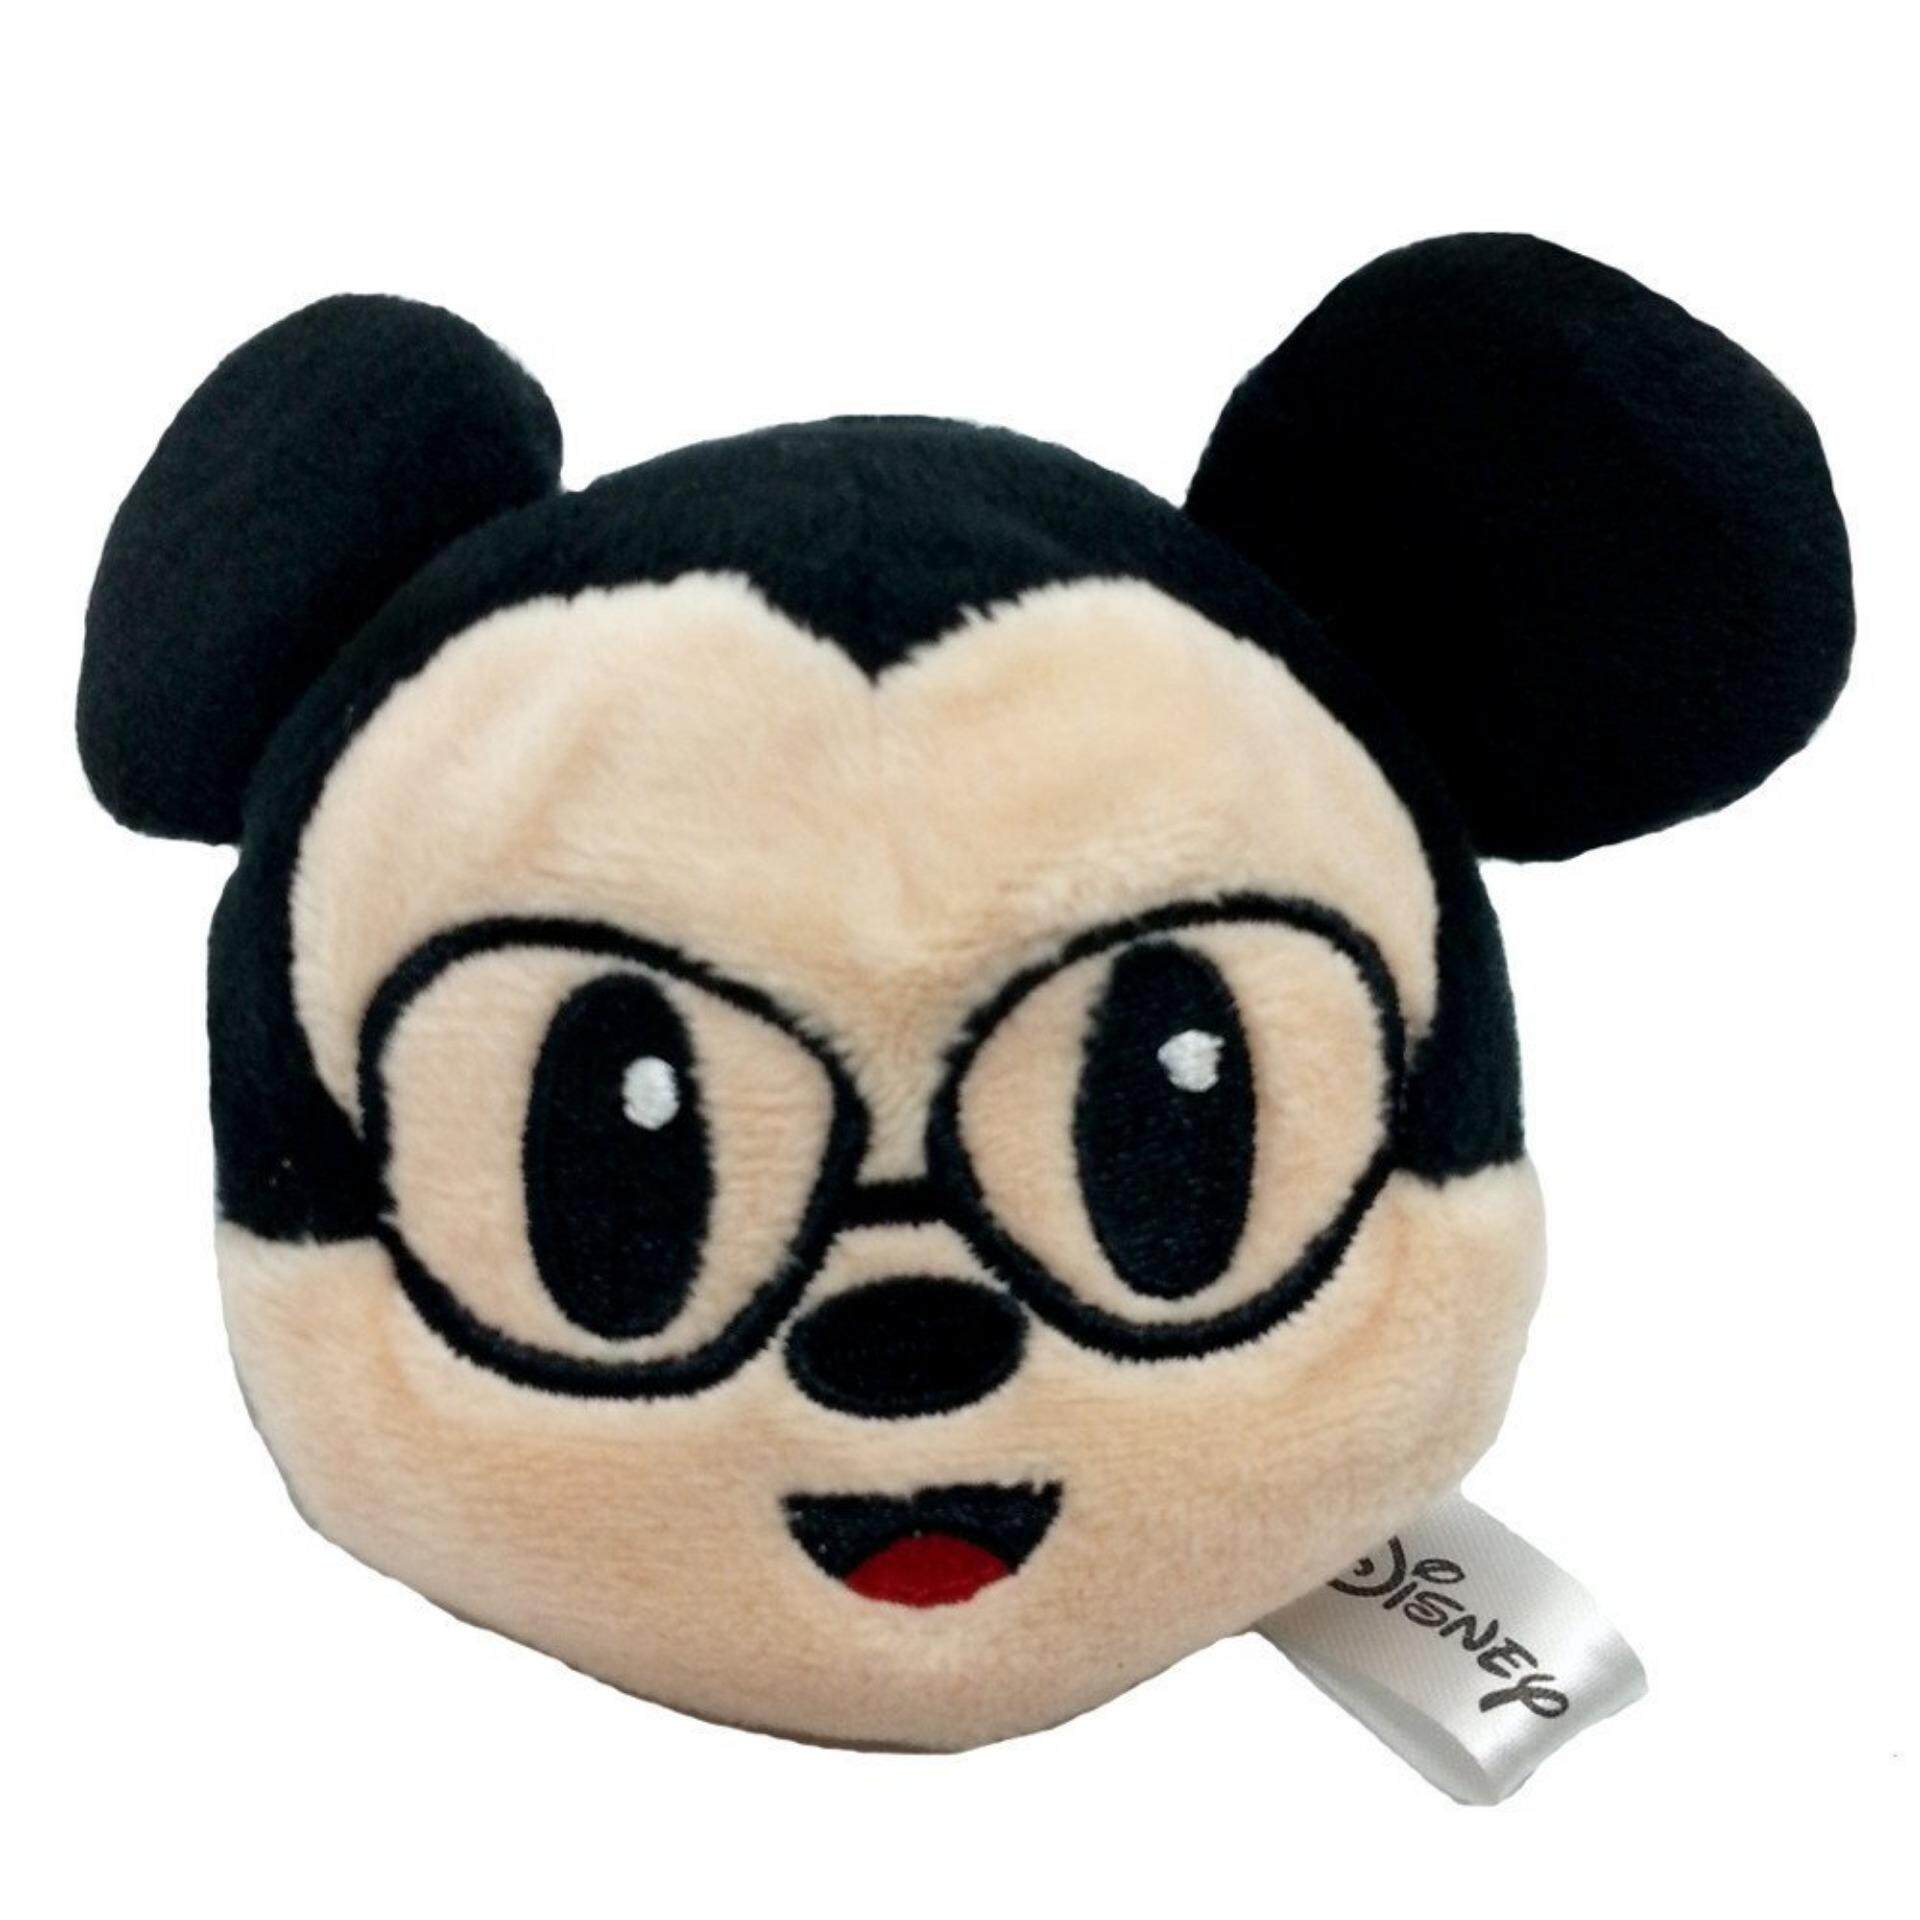 Disney Emoji Beanbags 2.5 Inches - Mickey Nerd toys for girls